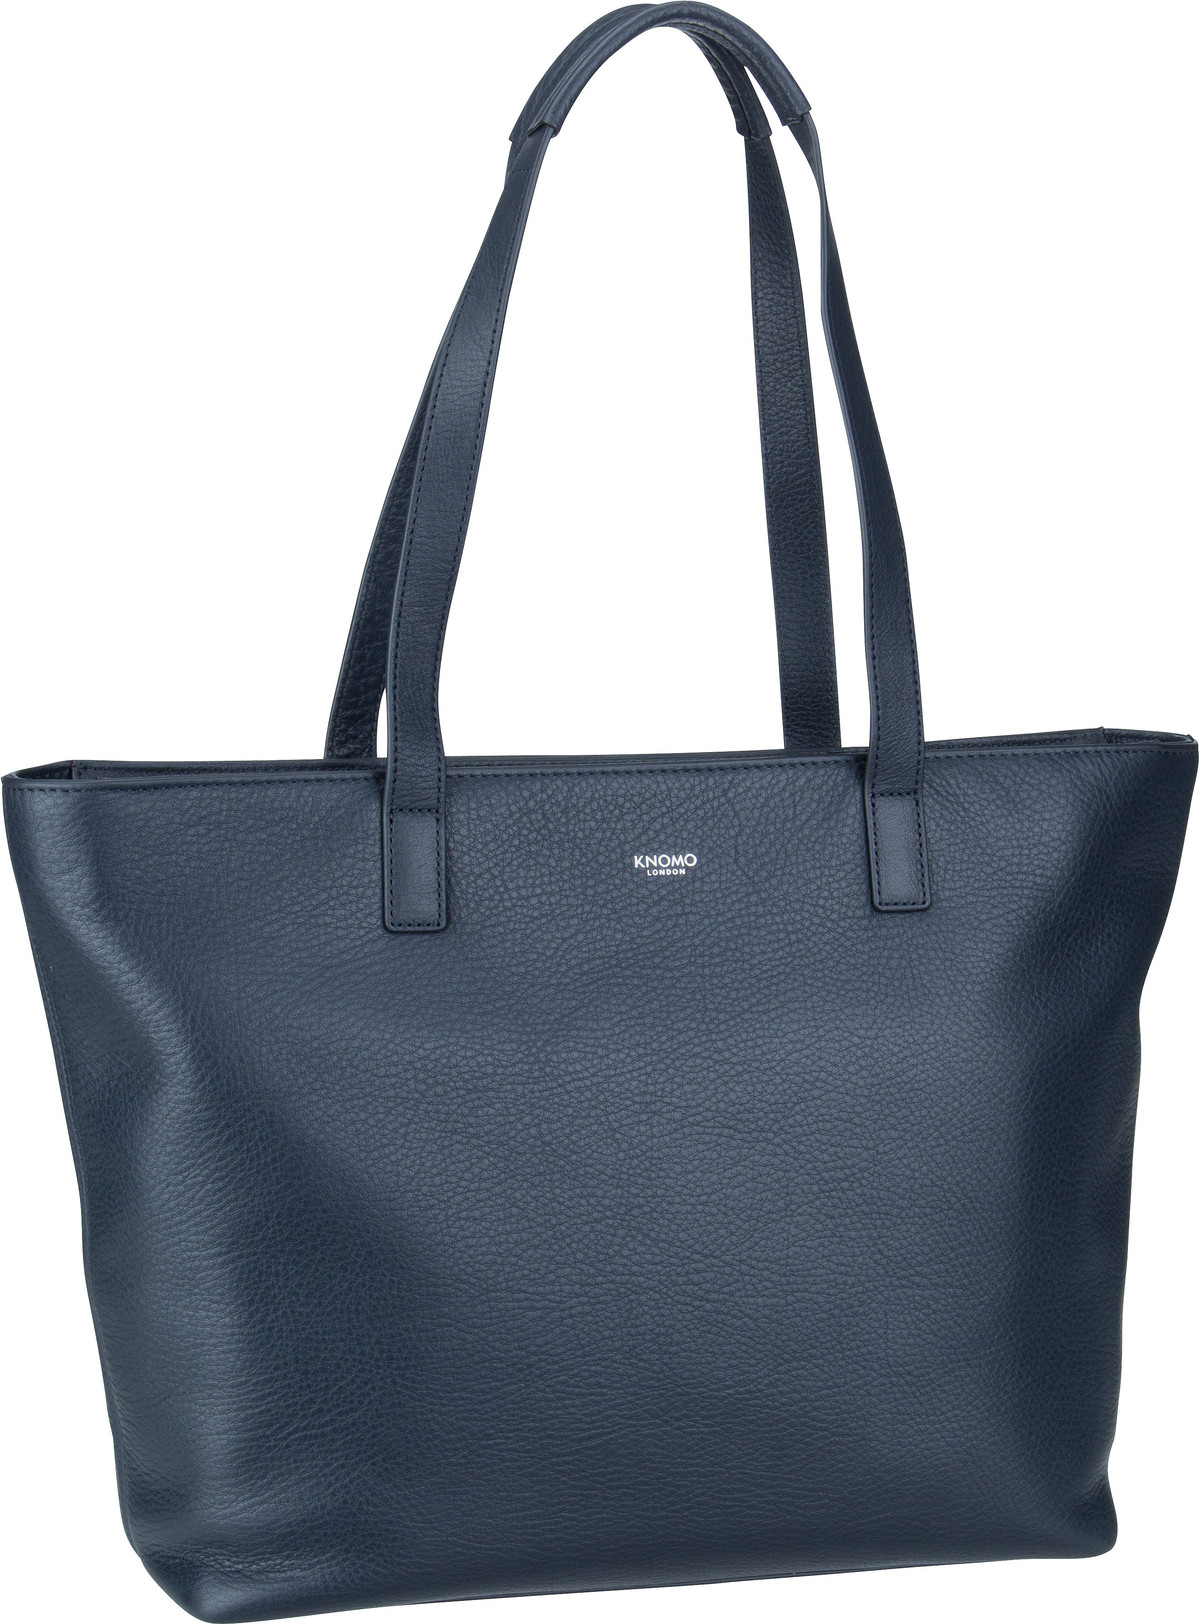 Handtasche Mayfair Luxe Mini Maddox 13'' Navy (8.9 Liter)